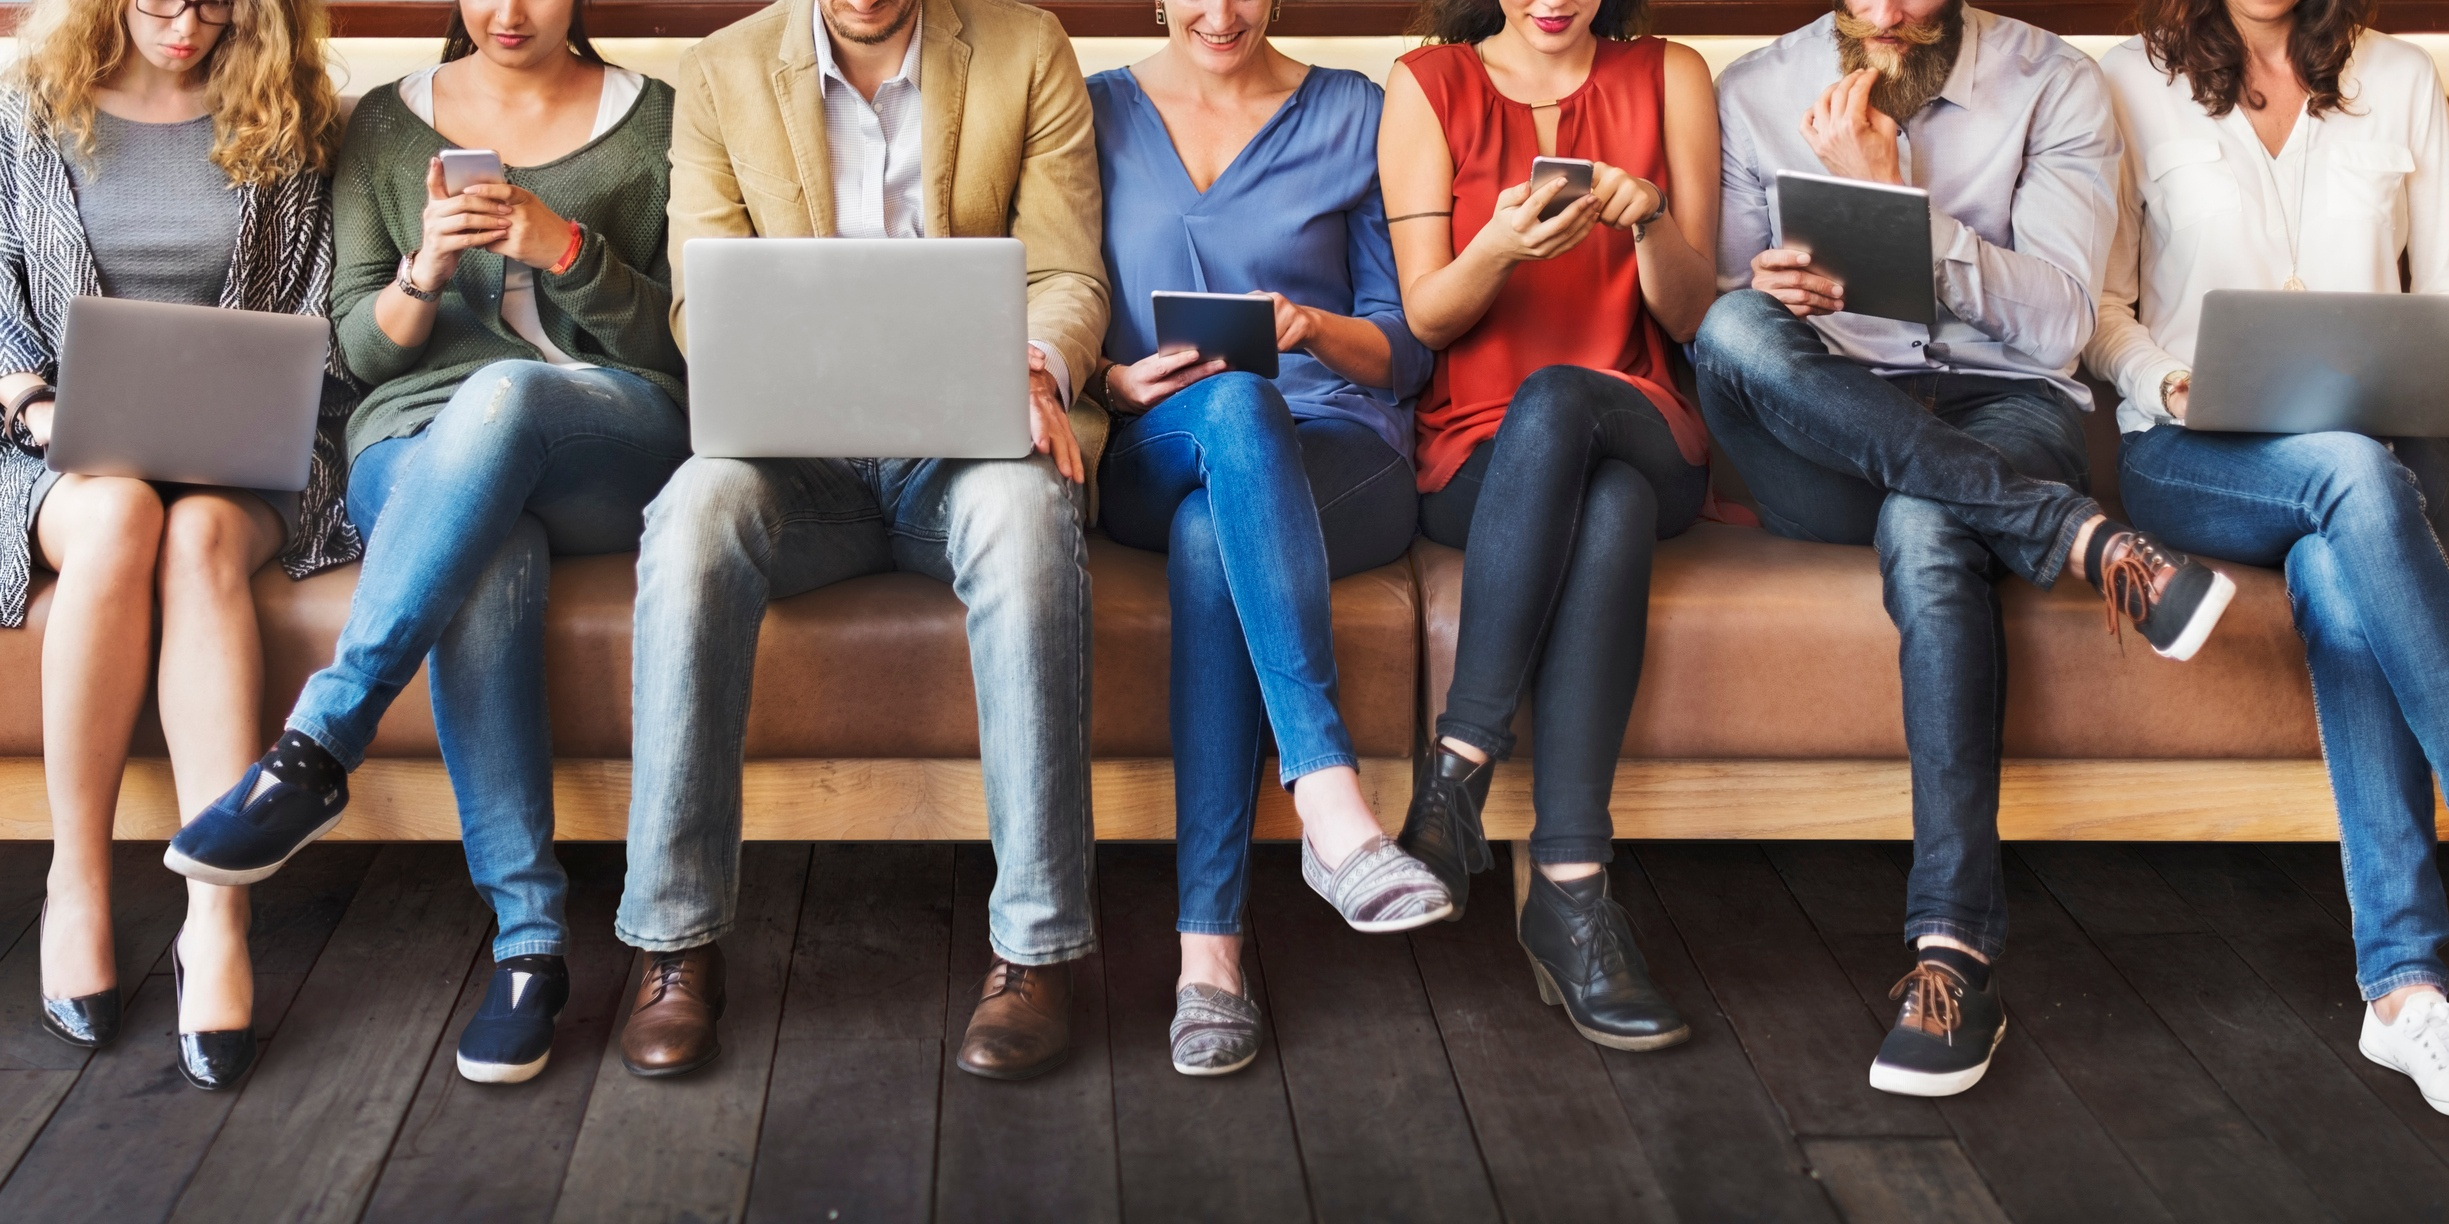 How to Ensure Digital Transformation Success: Build an Engaged Workforce